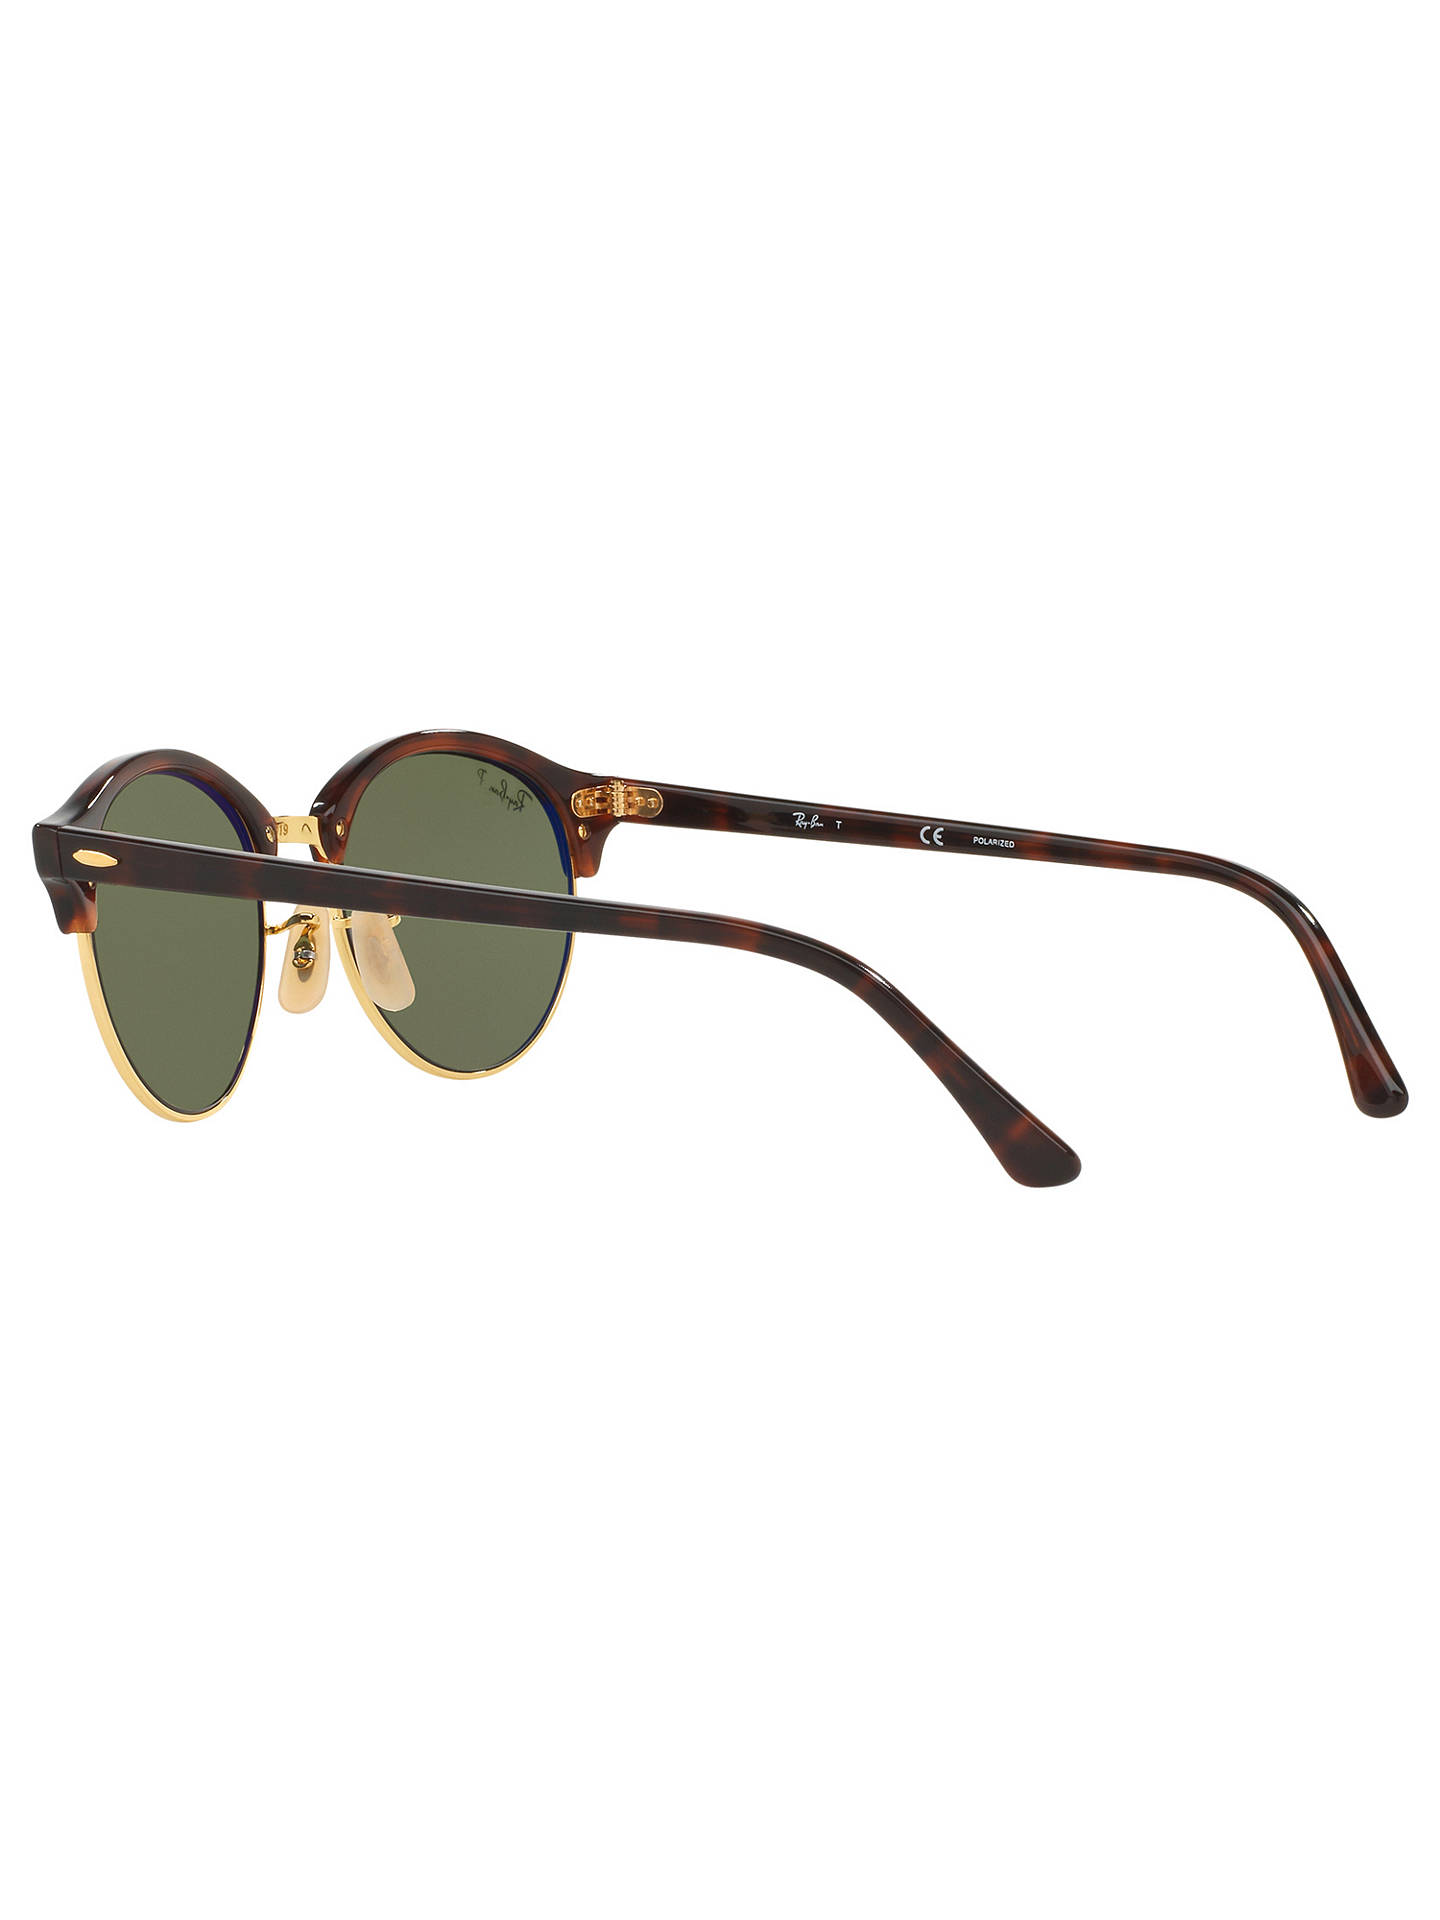 2dd5243b73 Ray-Ban RB4246 Clubround Polarised Round Sunglasses at John Lewis ...